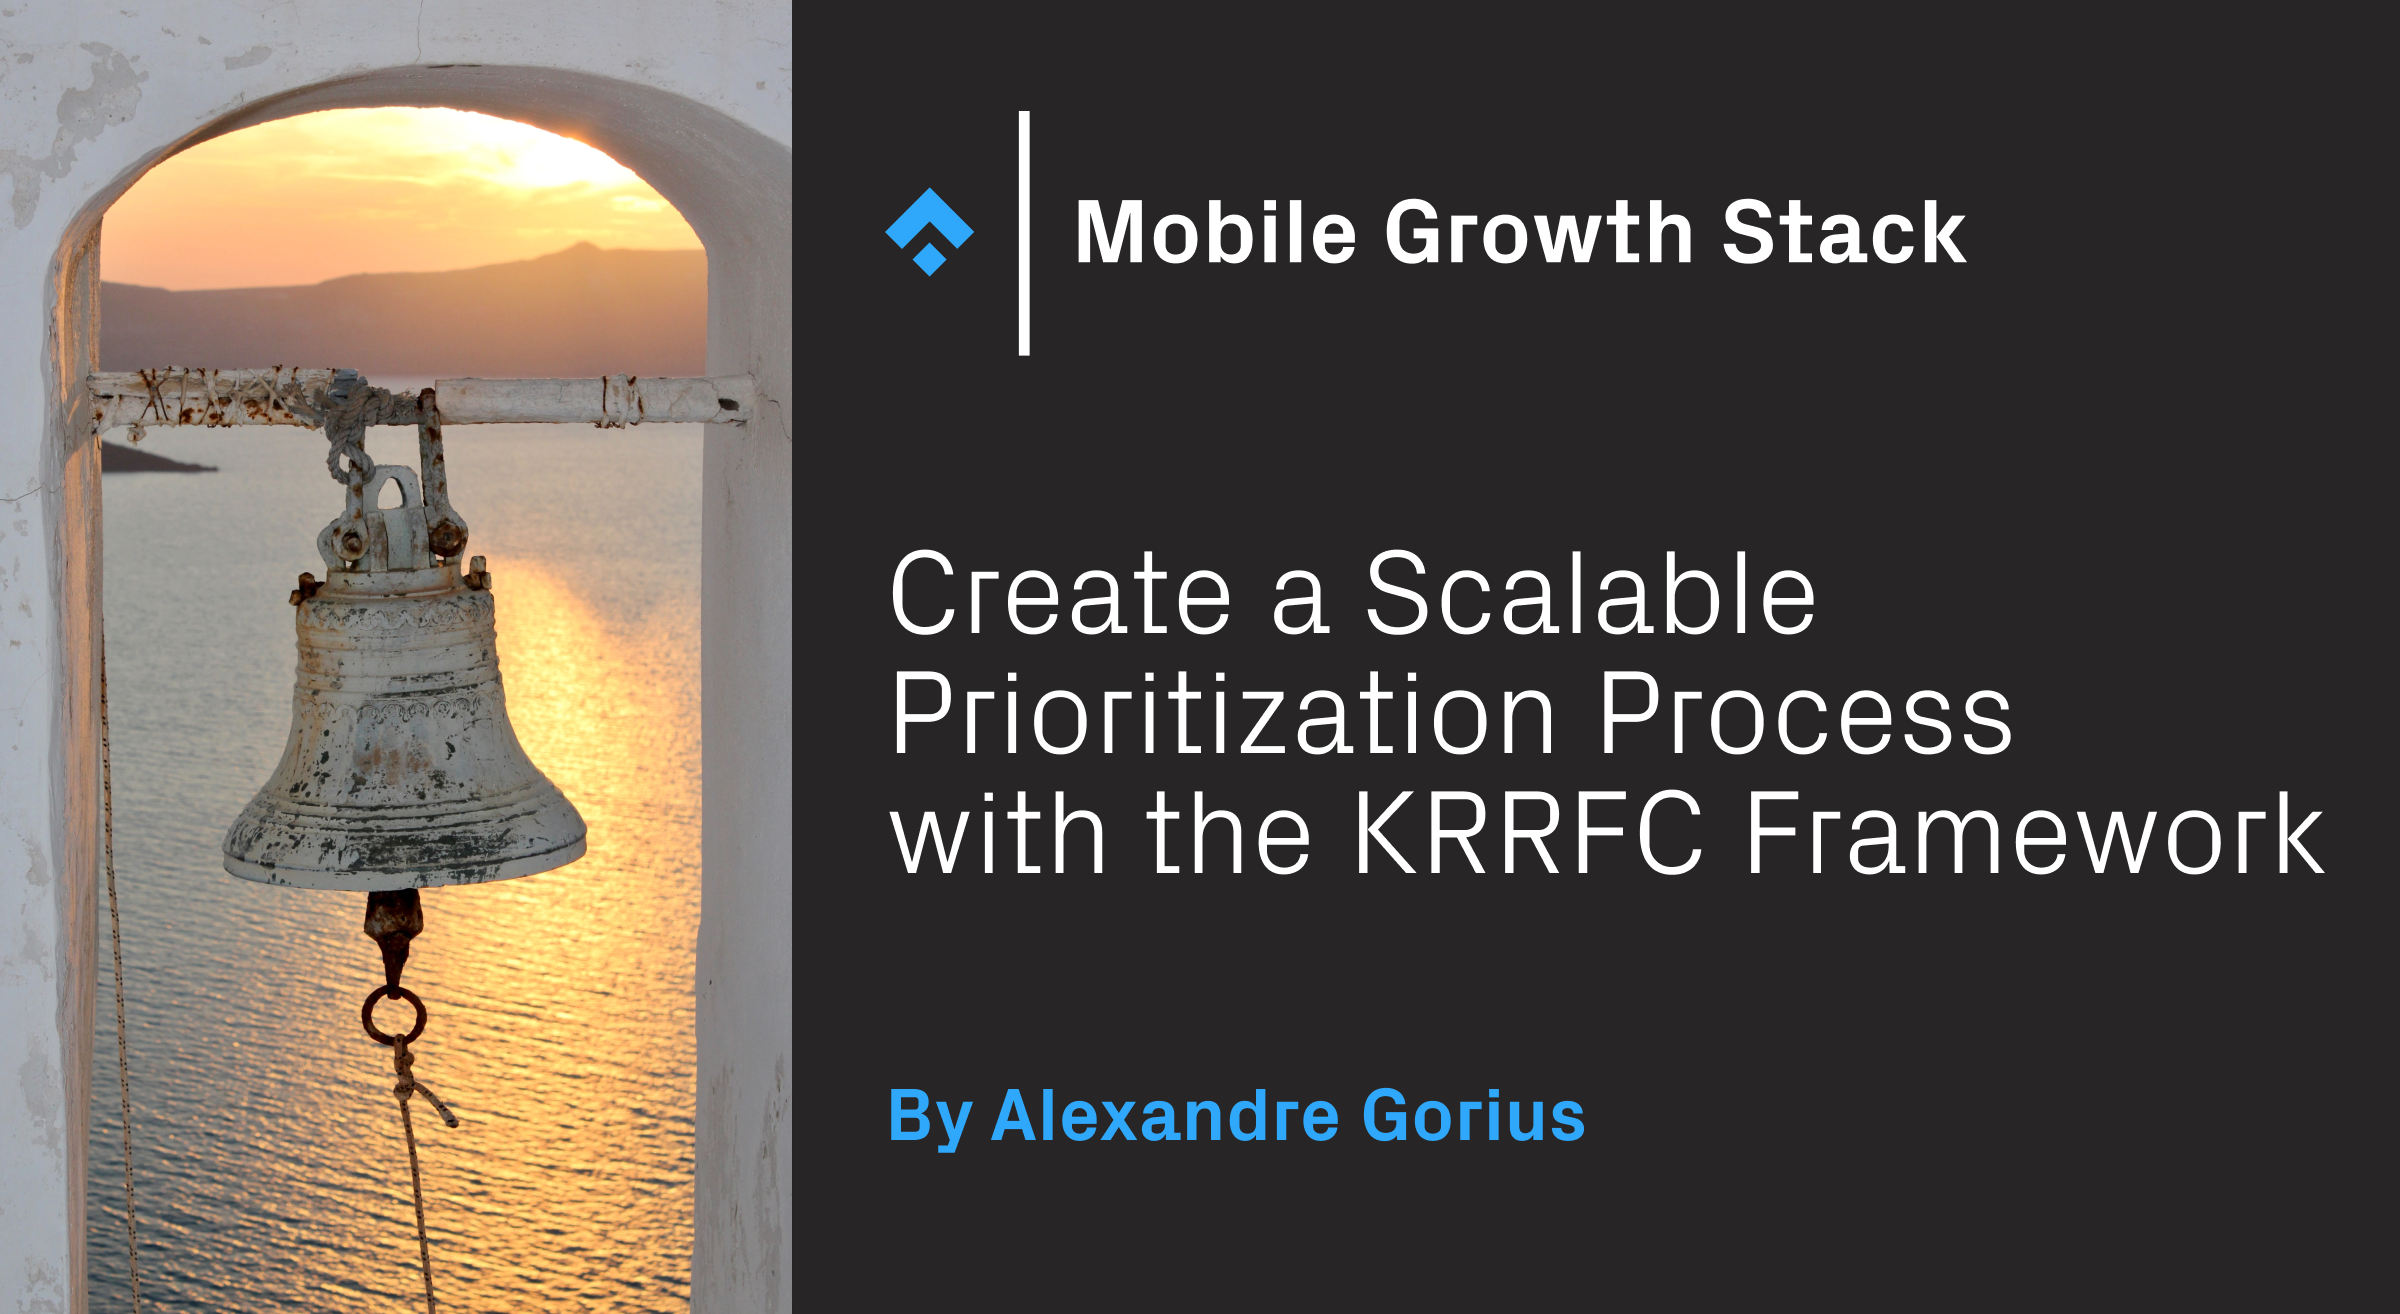 Create a Scalable Prioritization Process with the KRRFC Framework